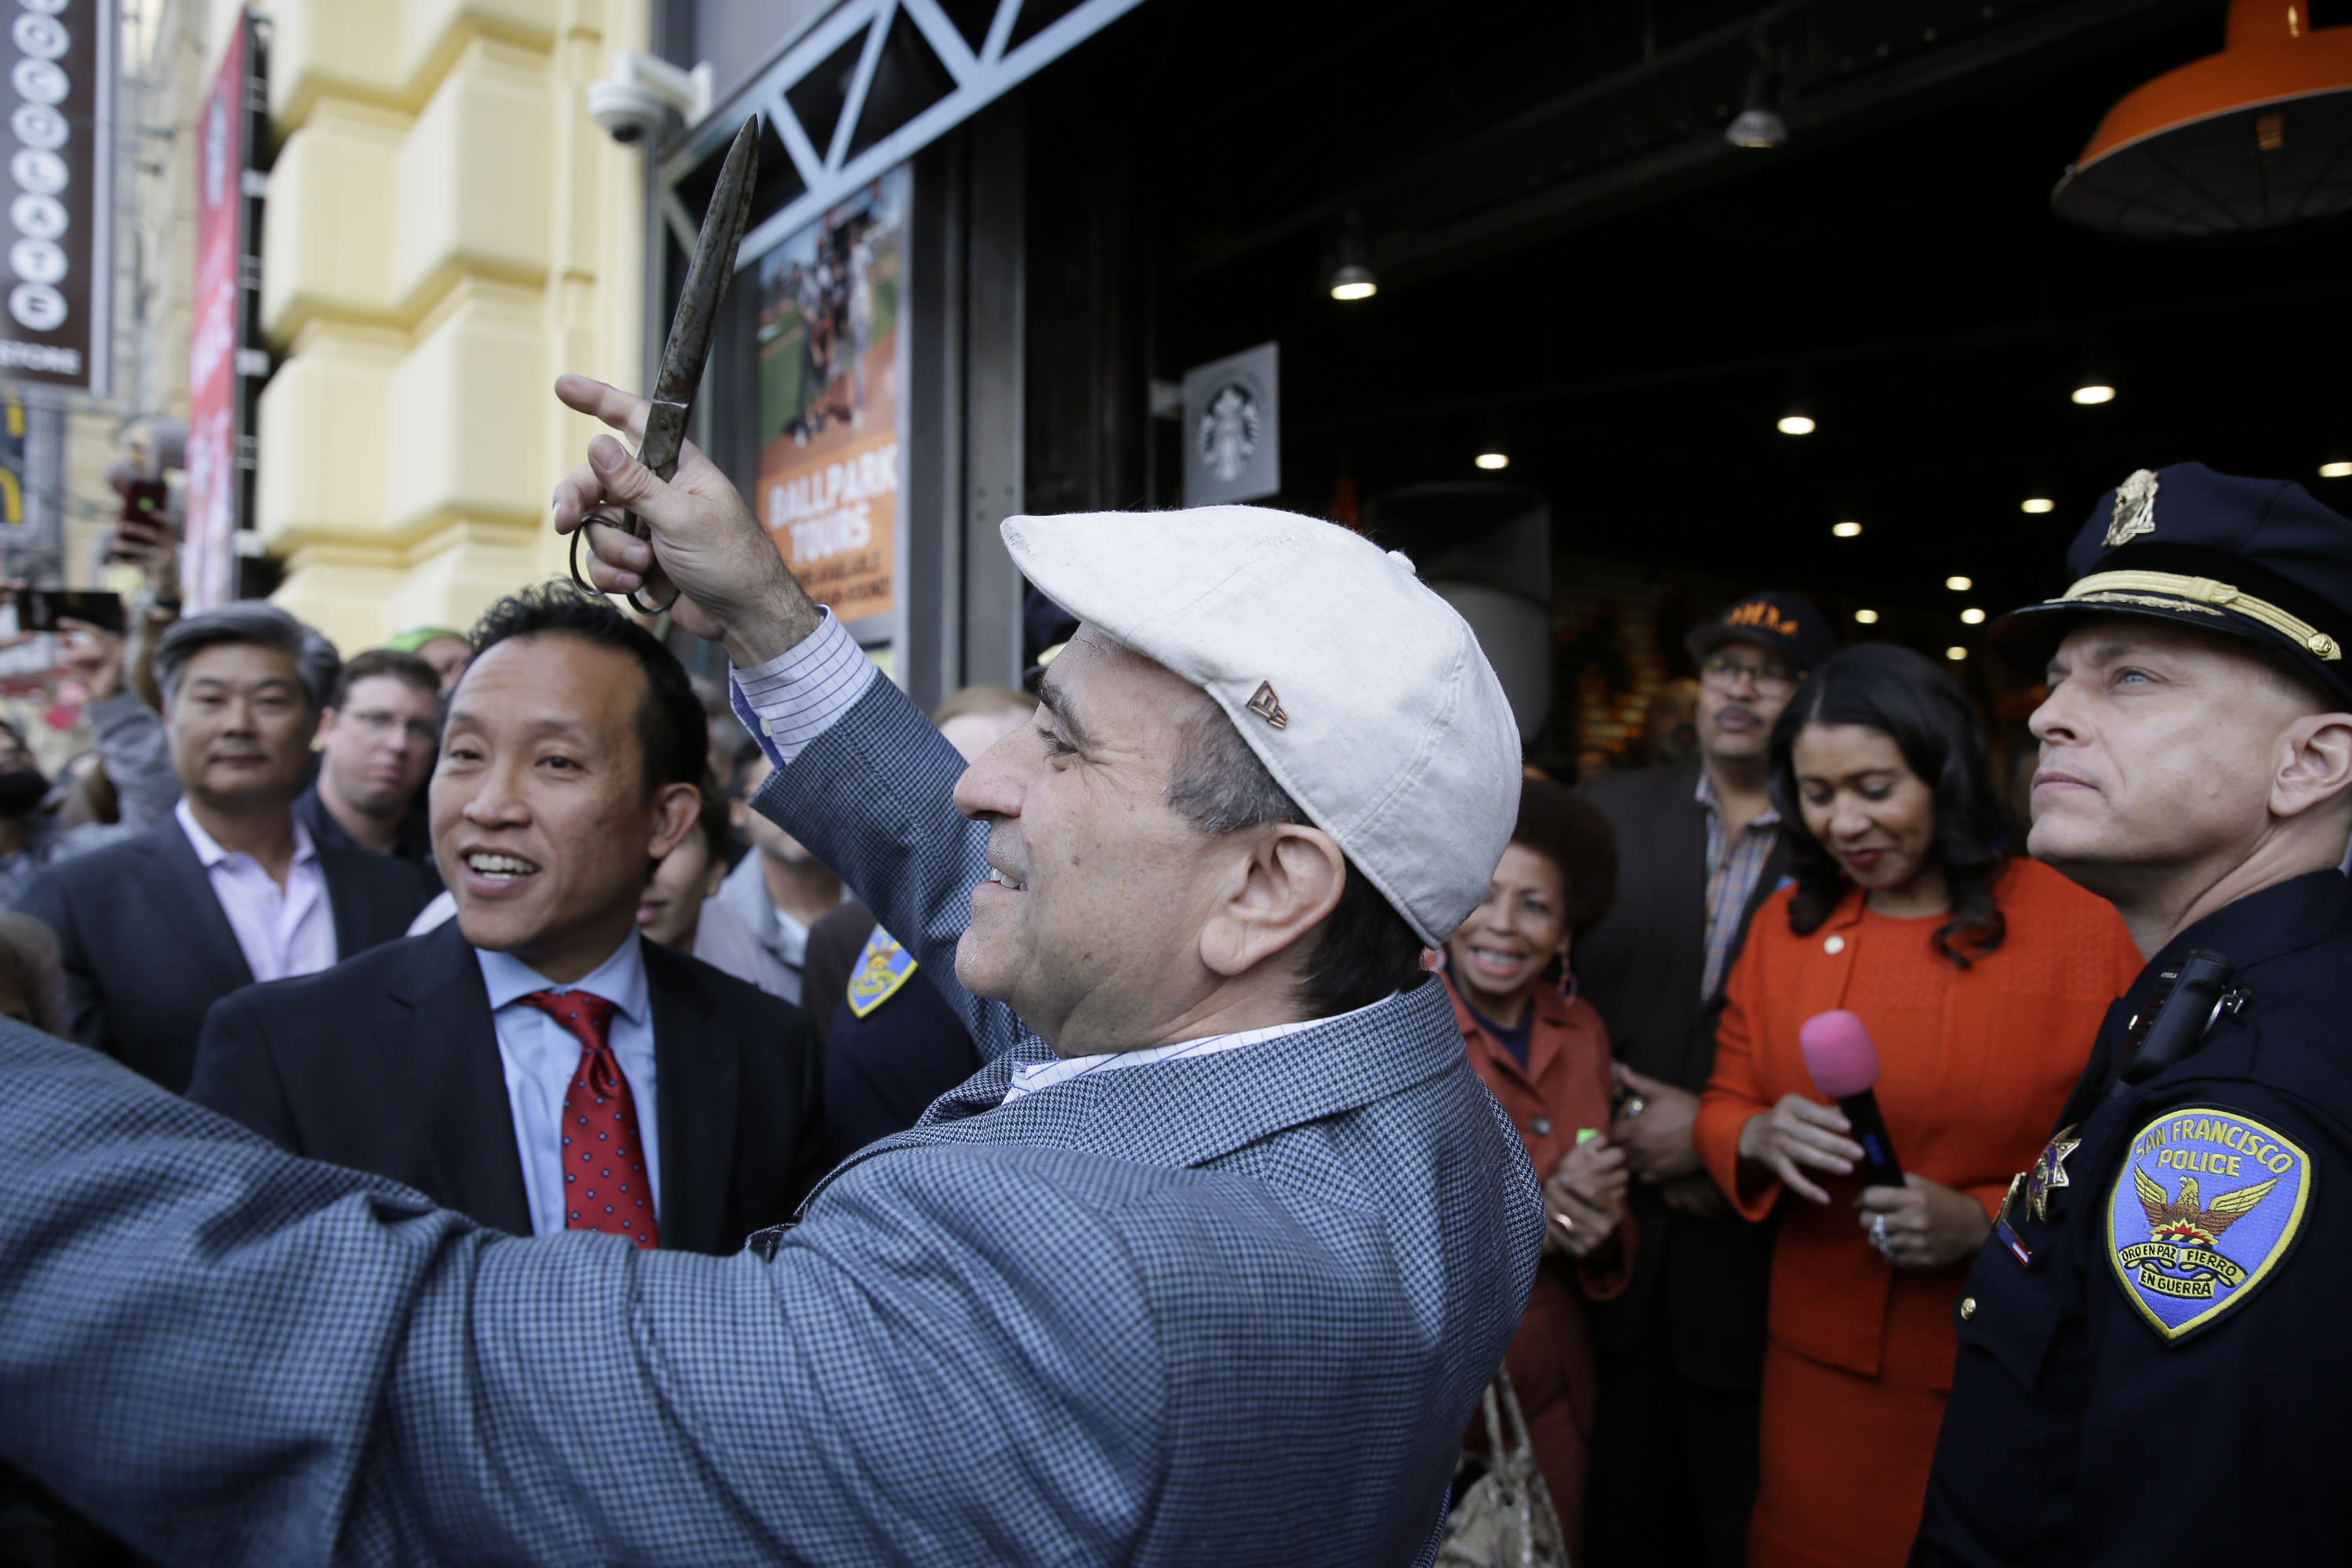 File - In this Nov. 20, 2018, file photo, owner Nick Bovis prepares to cut a ribbon during the opening of Lefty O'Doul's Baseball Ballpark Buffet & Café at Fisherman's Wharf in San Francisco. Looking on are state assemblyman David Chiu, second from left, San Francisco Mayor London Breed, second from right and city public works director Mohammed Nuru, third from right. A top San Francisco official in charge of cleaning up the city's notoriously filthy streets and a champion of adding more portable toilets has been arrested, jail records show. San Francisco Public Works Director Mohammed Nuru was taken into custody Monday, Jan. 27, 2020, along with Nick Bovis, the owner of Lefty O' Doul's, a longtime sports bar popular with tourists. Records say only that the men were arrested for felony safekeeping, which typically indicates federal charges. (AP Photo/Eric Risberg)